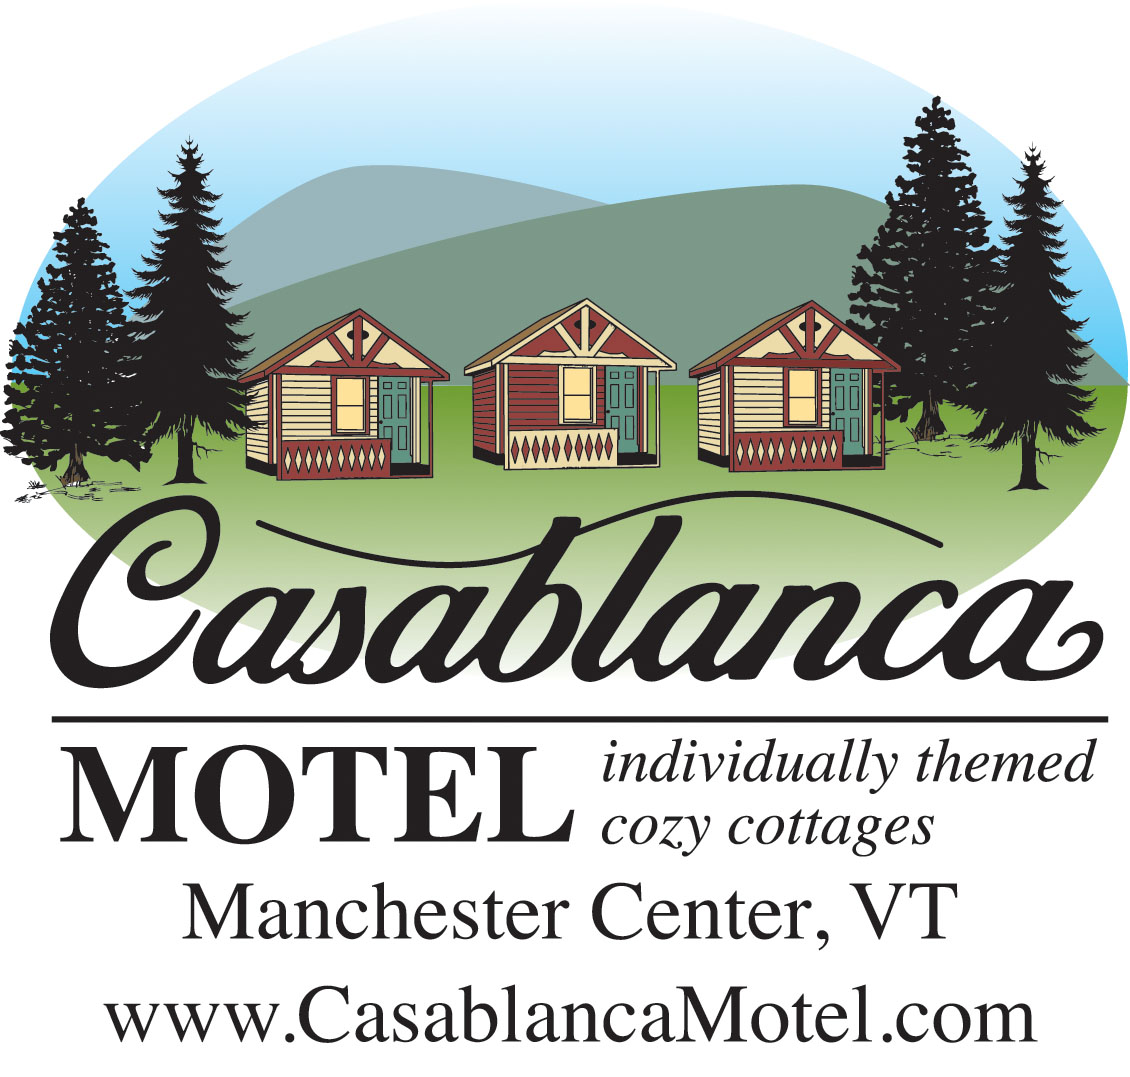 Casablanca Motel - Cozy Cottages